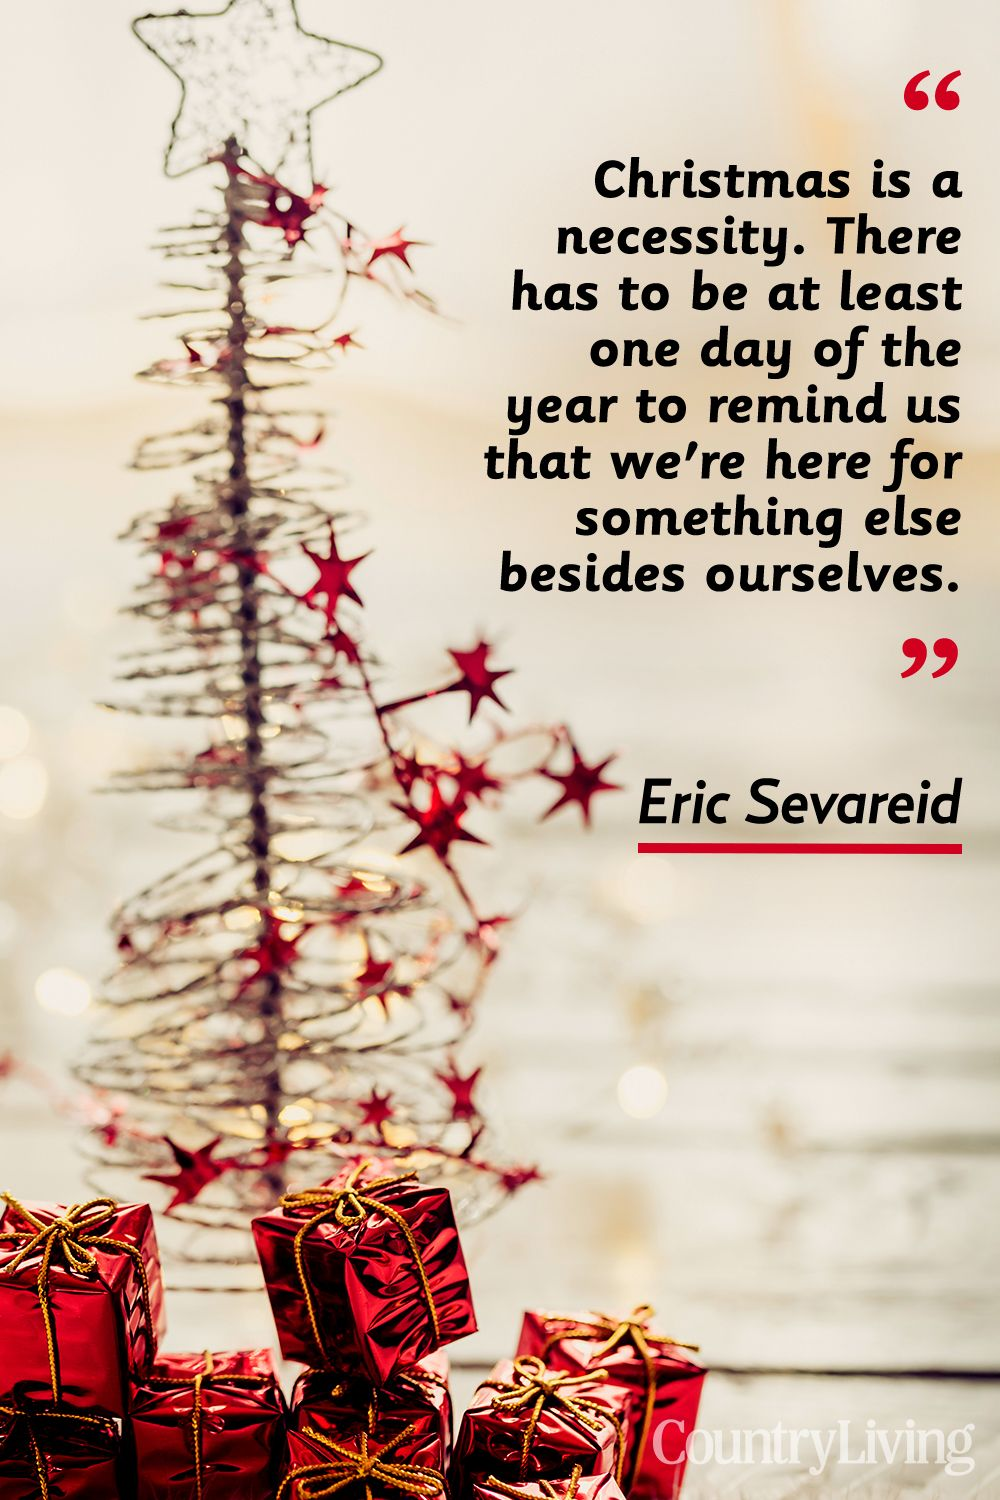 20 Merry Christmas Quotes  Inspirational Holiday Sayings. Cute Quotes In Russian. Quitting Coffee Quotes. Adventure Work Quotes. Xena Quotes About Love. Sassy Kickass Quotes. Sister Quotes For Wedding. Quotes About Moving On Images. Happy Quotes Japanese